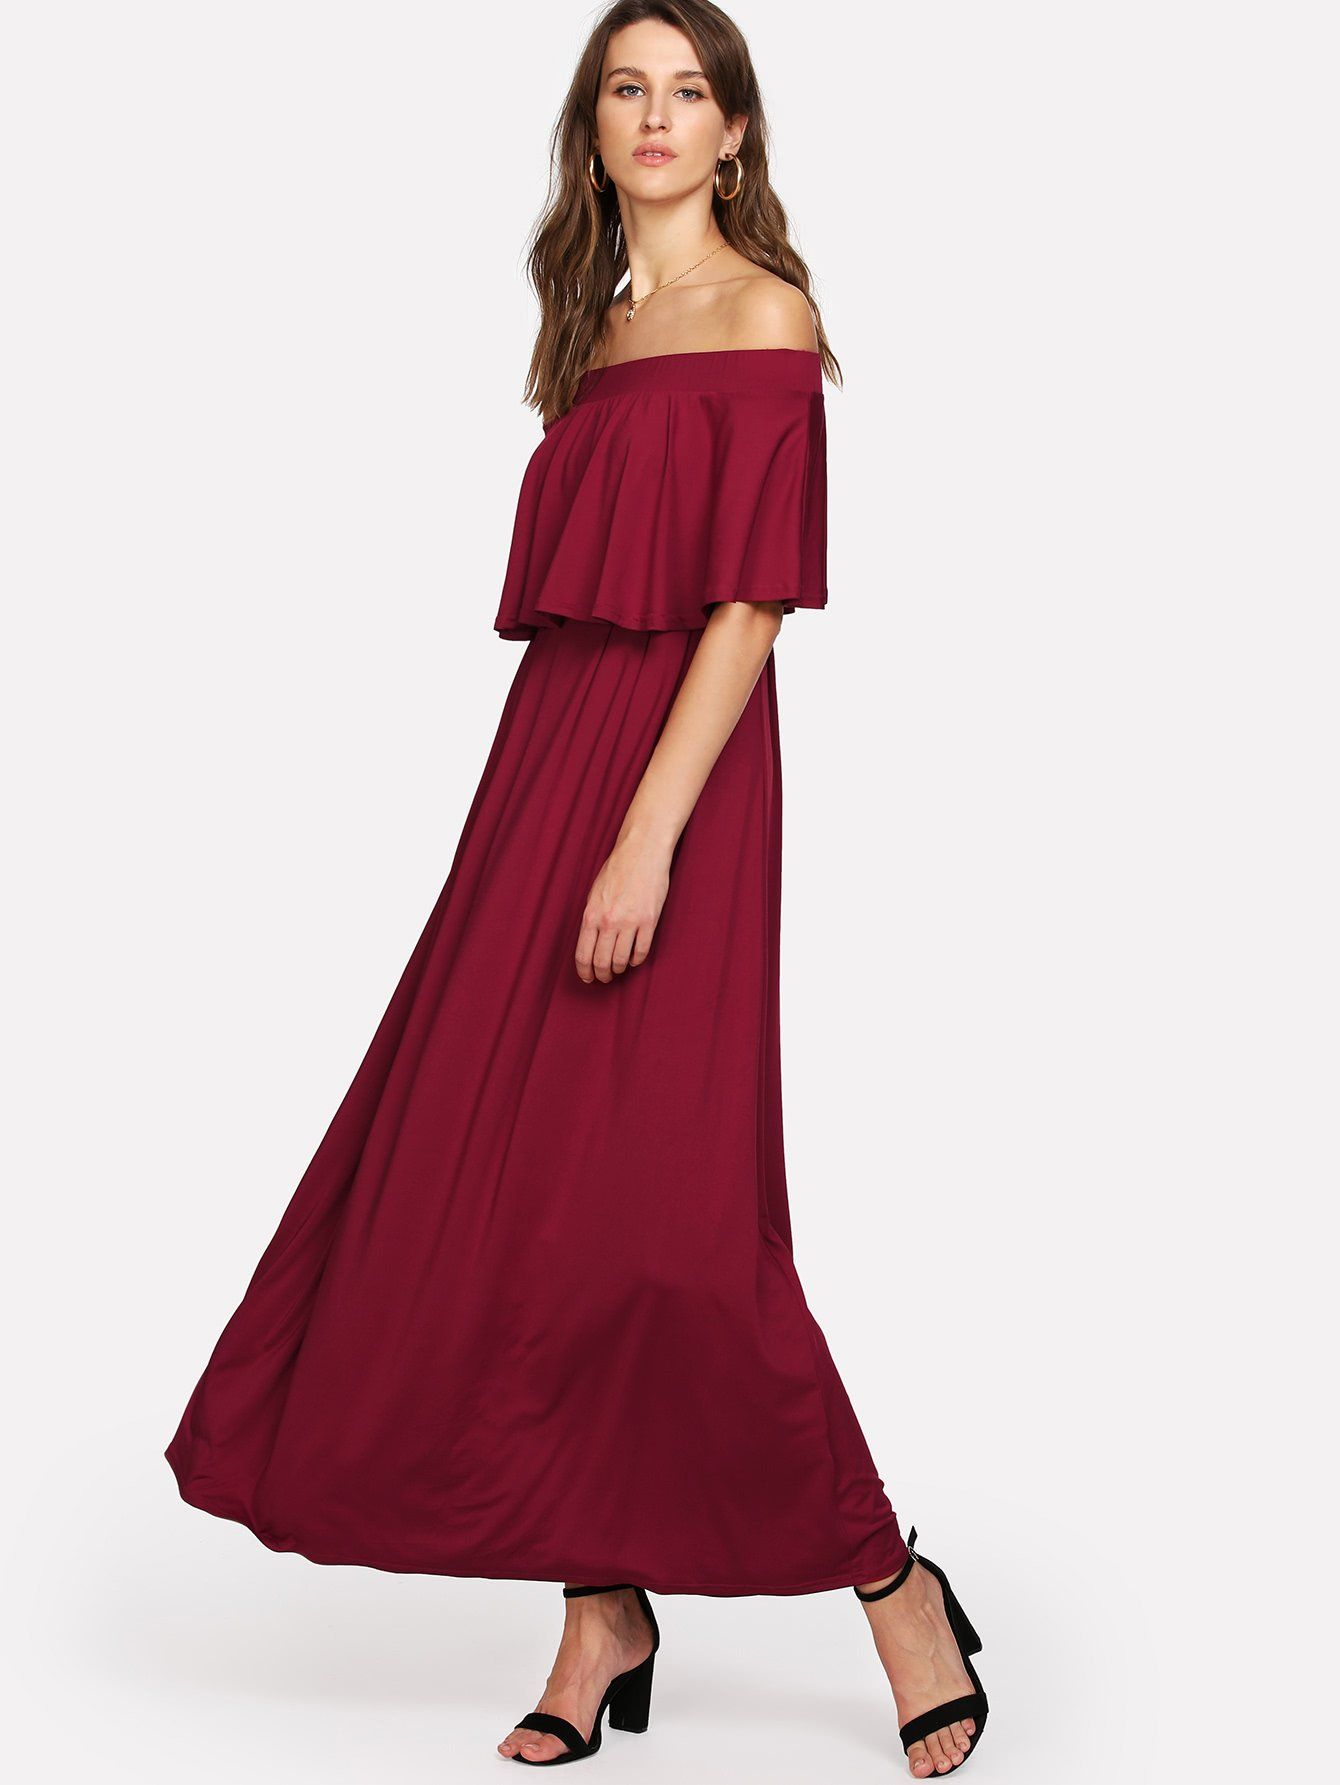 Milumia womens off the shoulder a line neckline ruffle party maxi